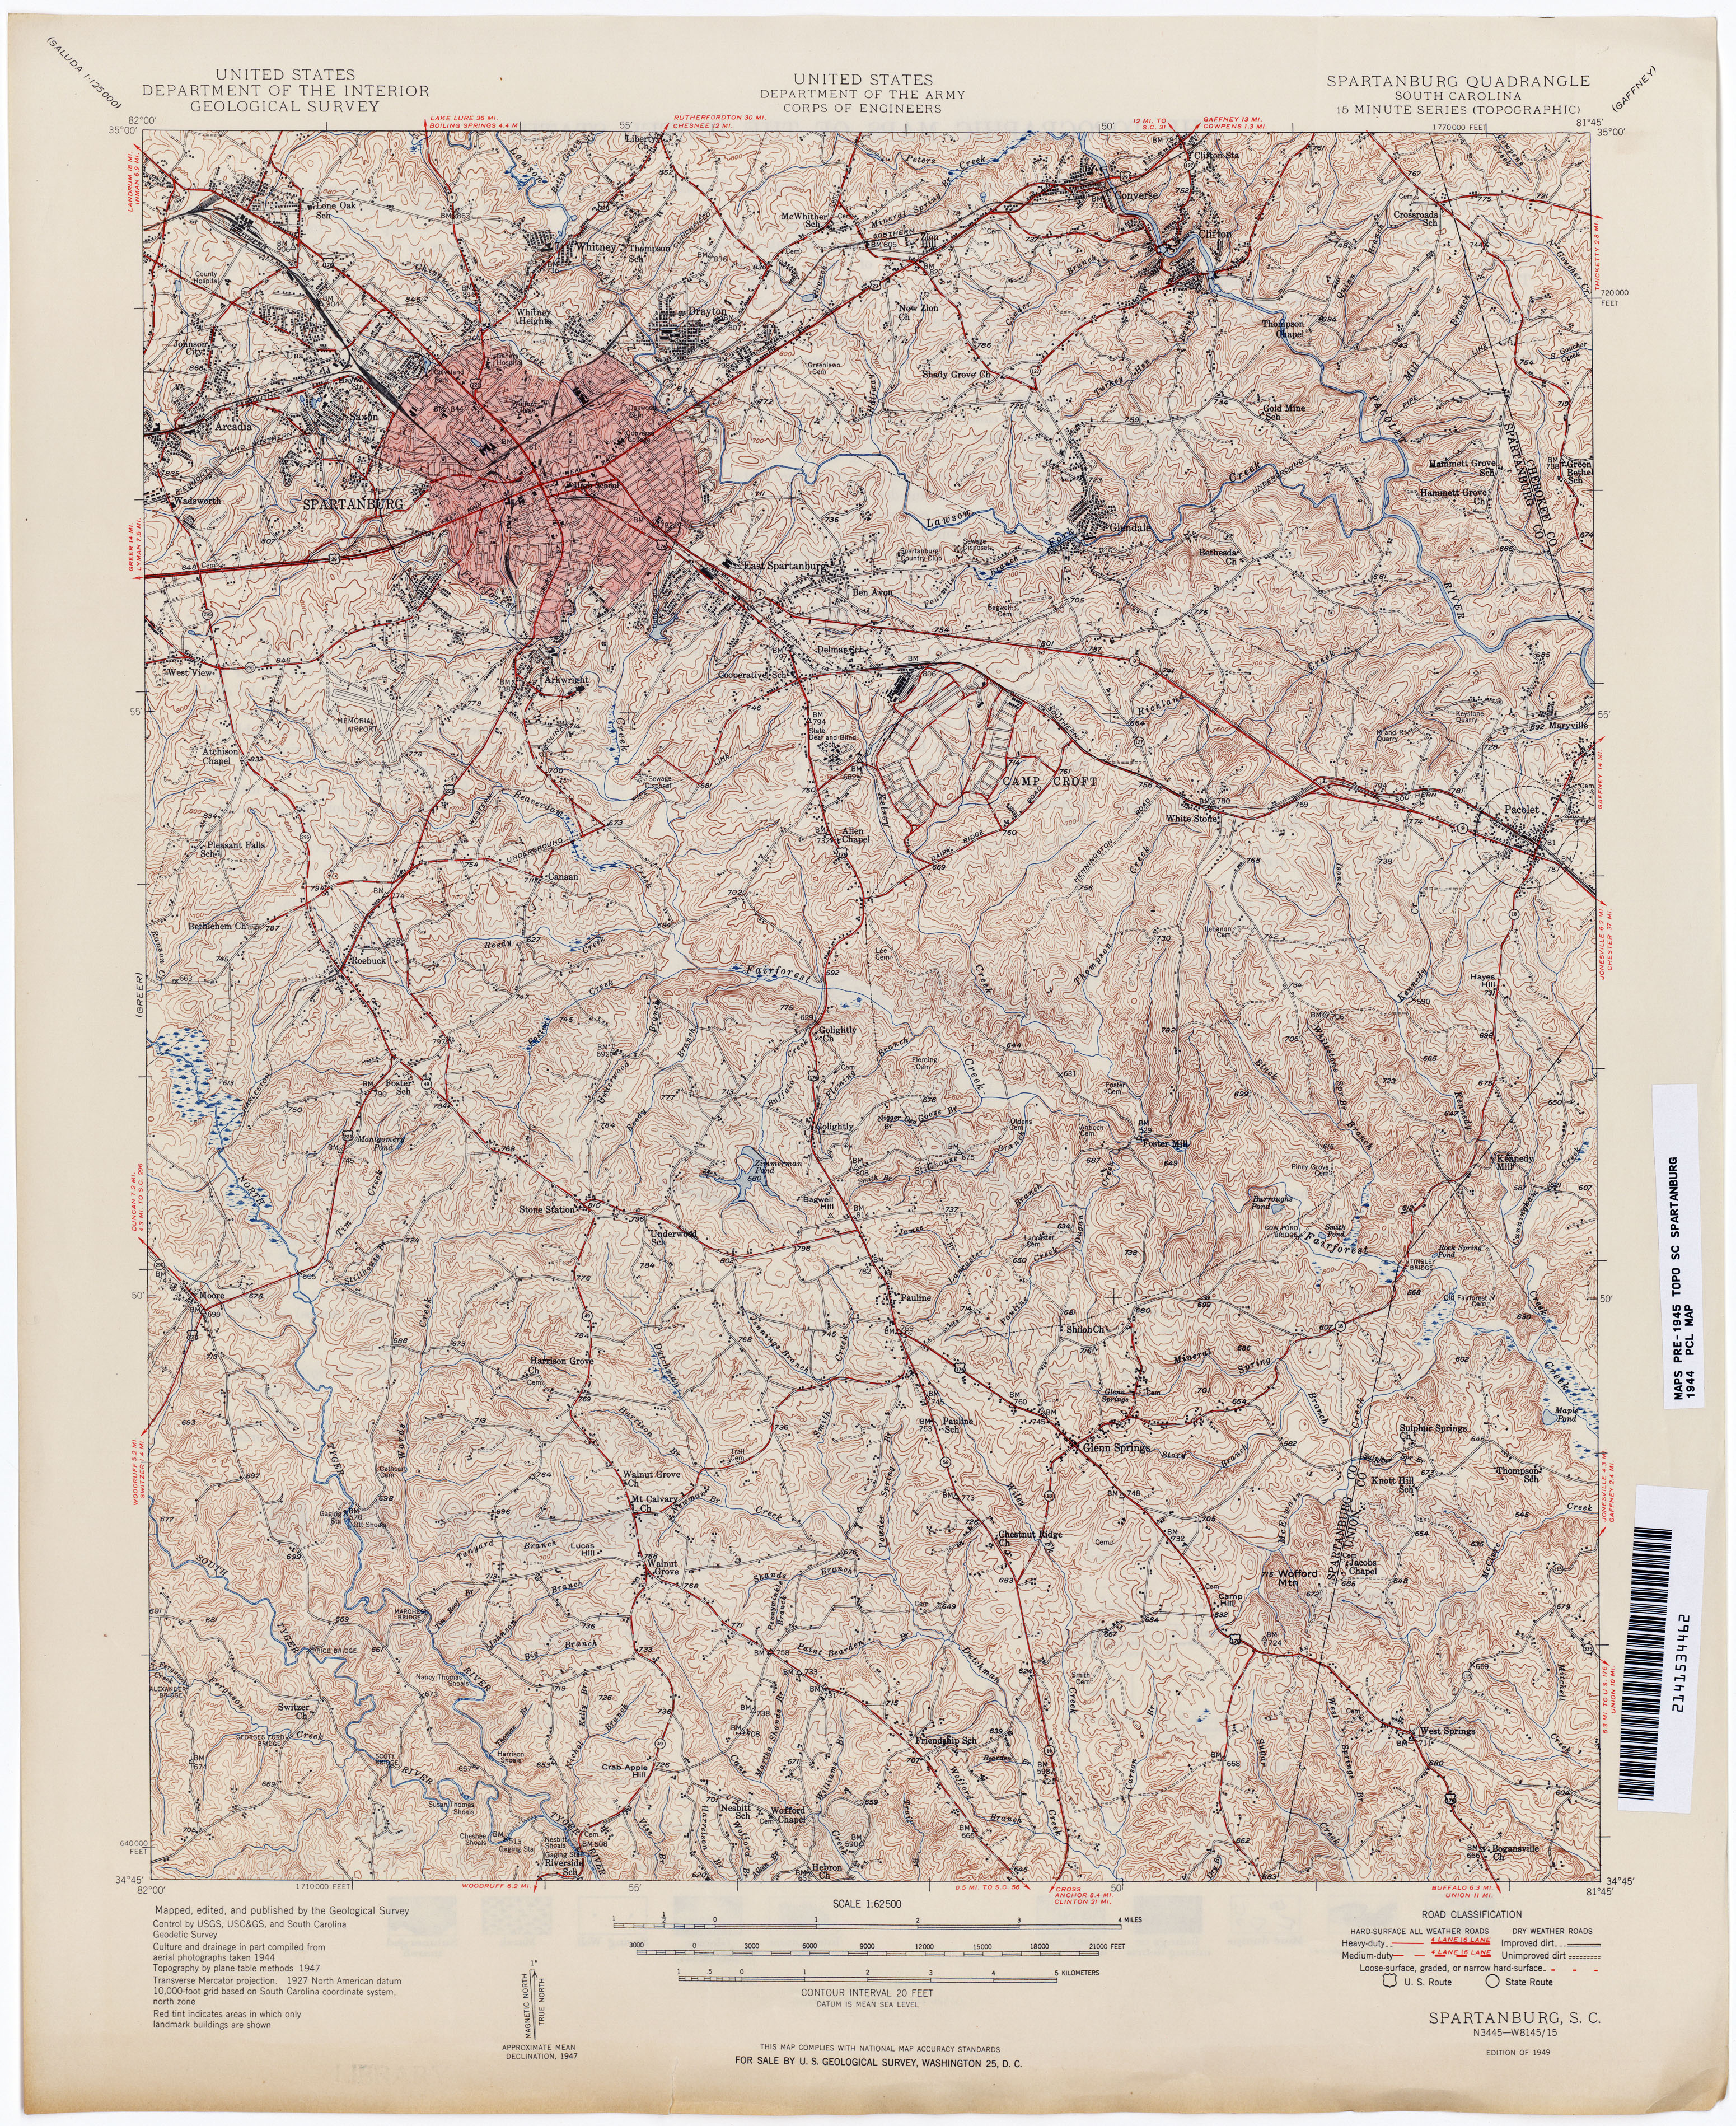 South Carolina Historical Topographic Maps PerryCastañeda Map - Spartanburg county south carolina on us map